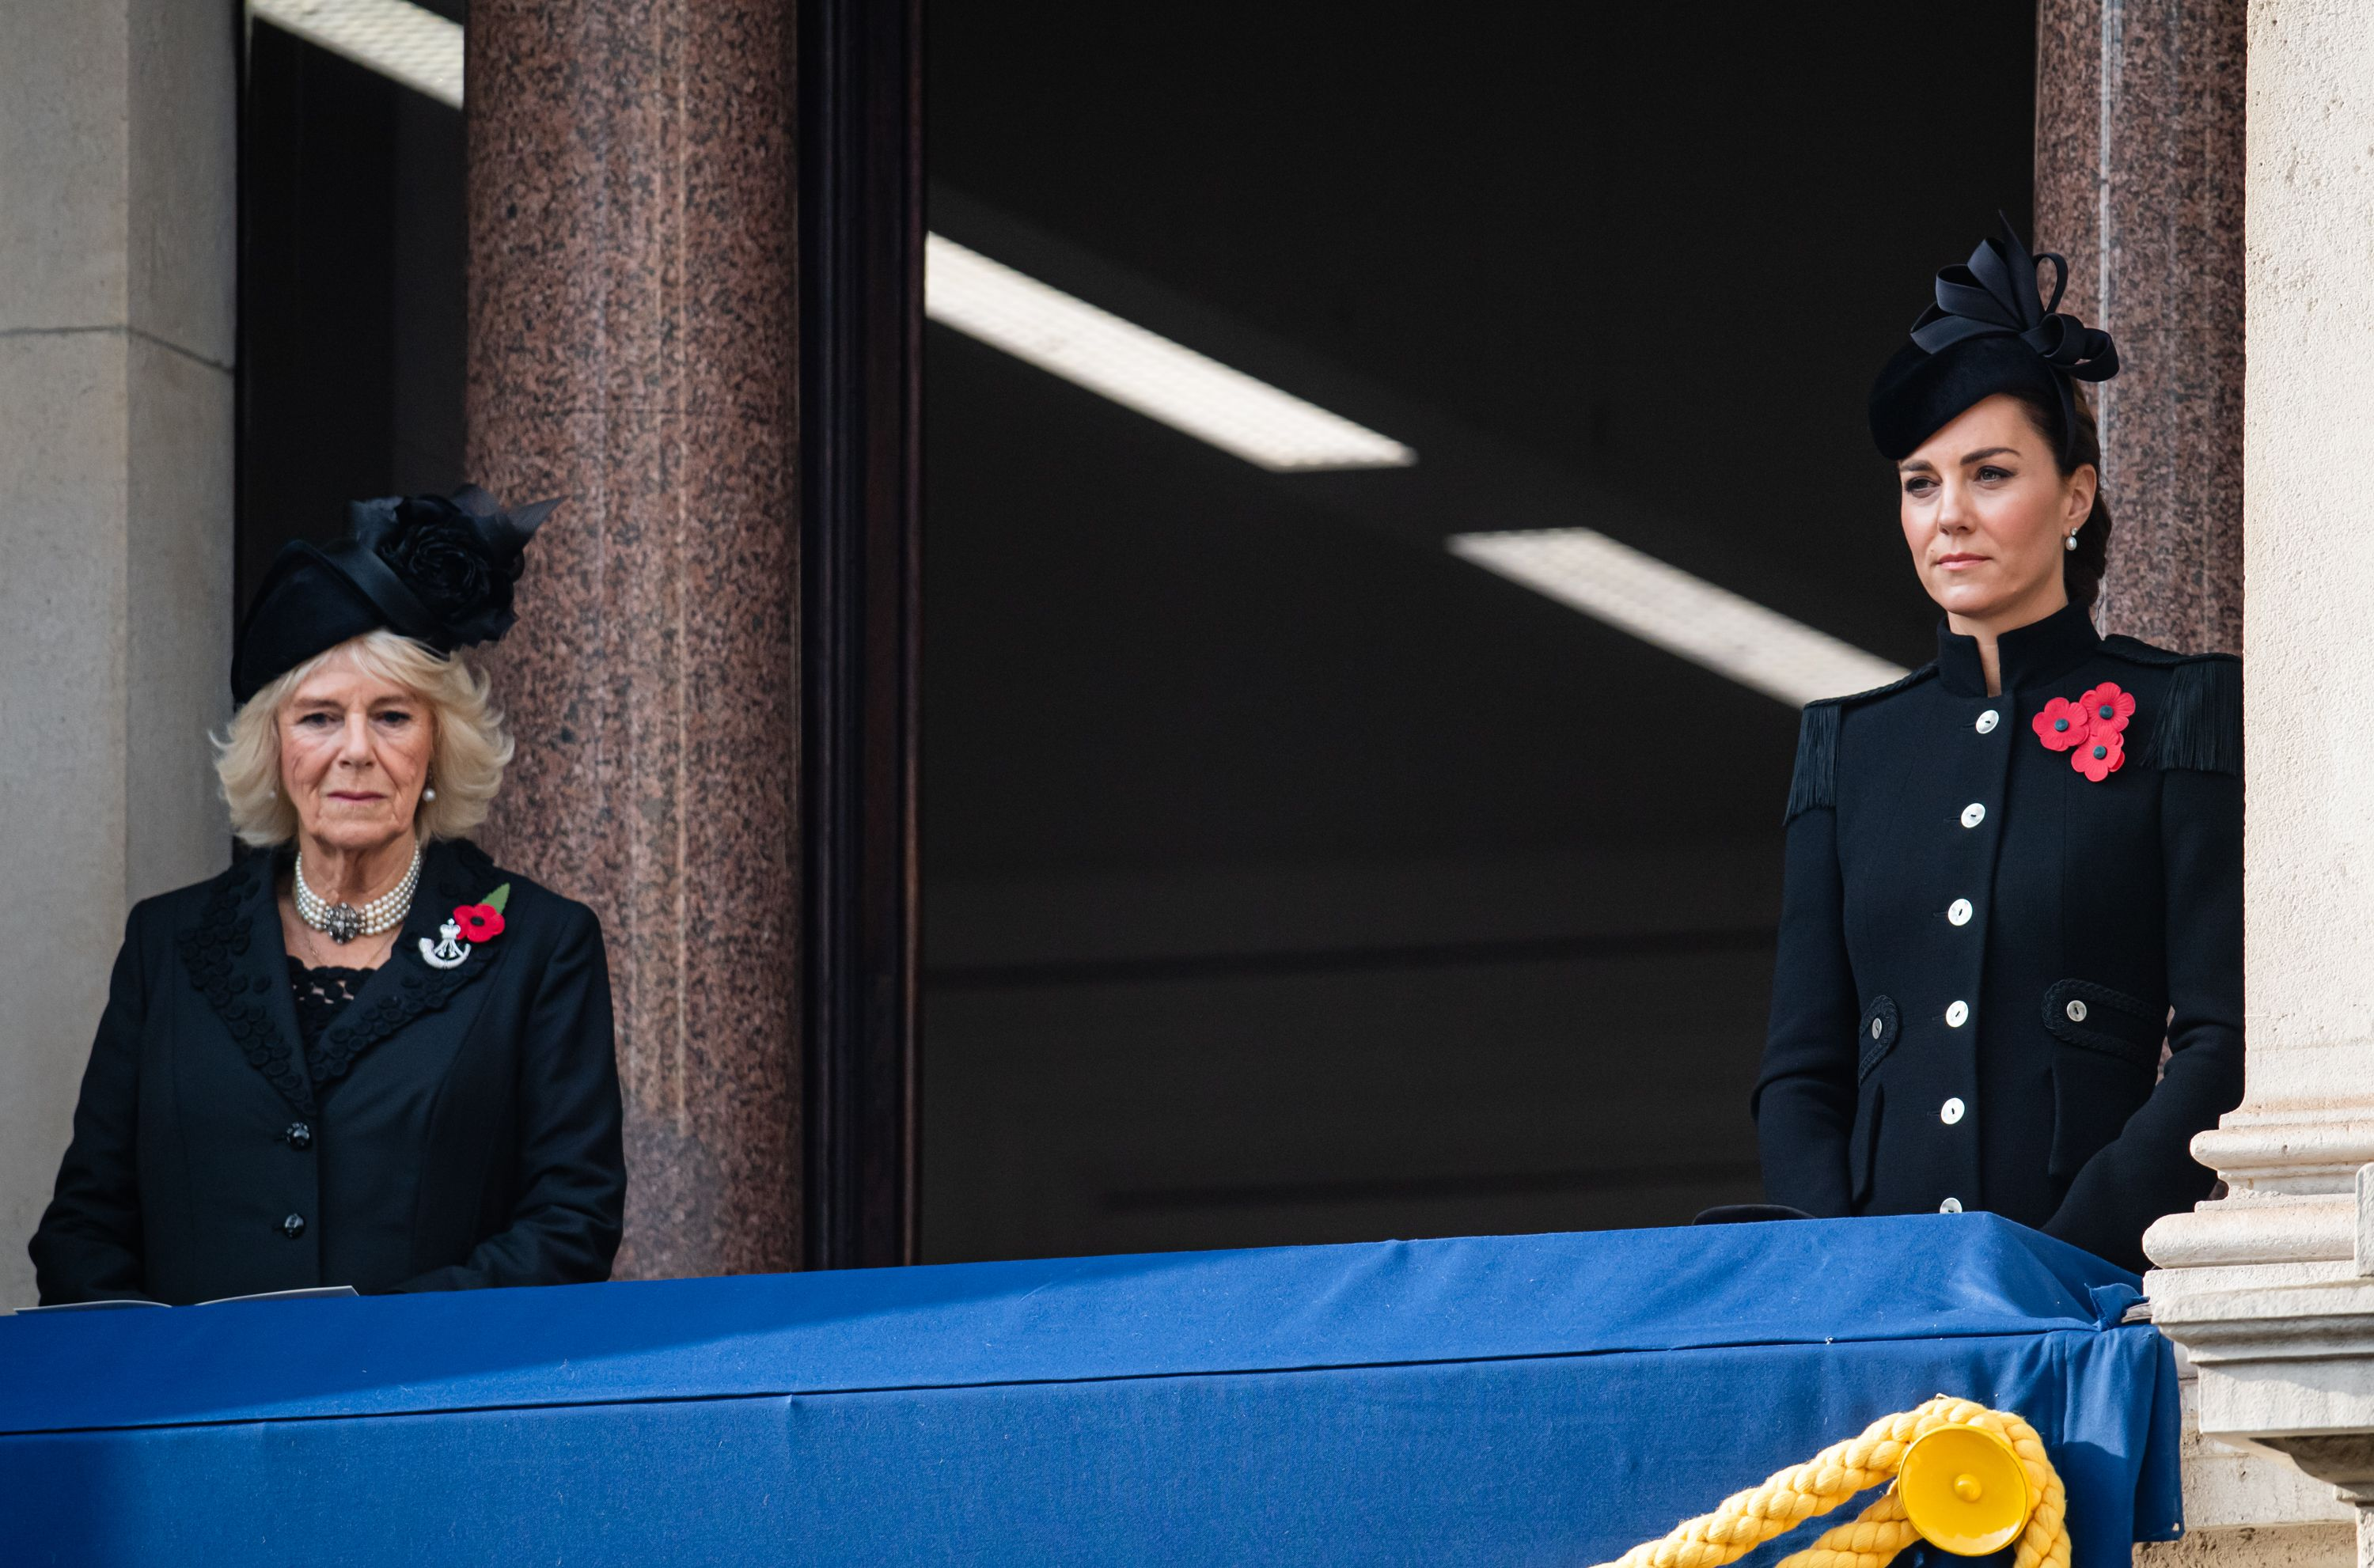 Catherine, Duchess of Cambridge and Camilla, Duchess of Cornwall at the National Service of Remembrance at The Cenotaph on November 08, 2020   Source: Getty Images